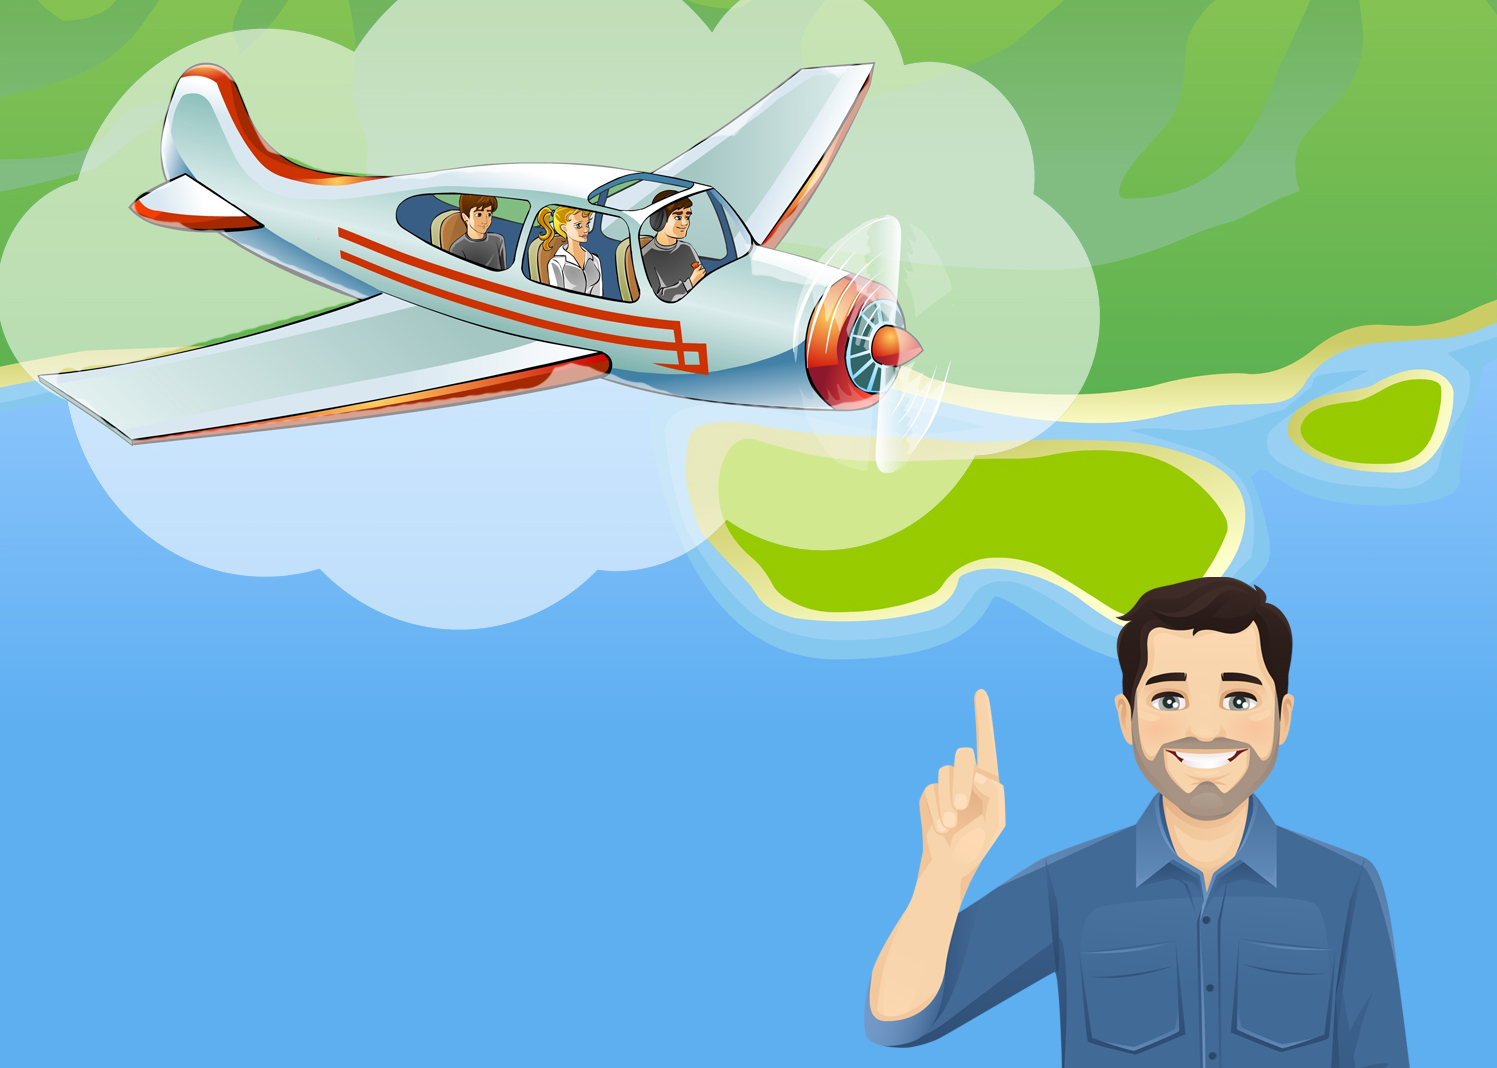 Talking to non-pilot friends about flying